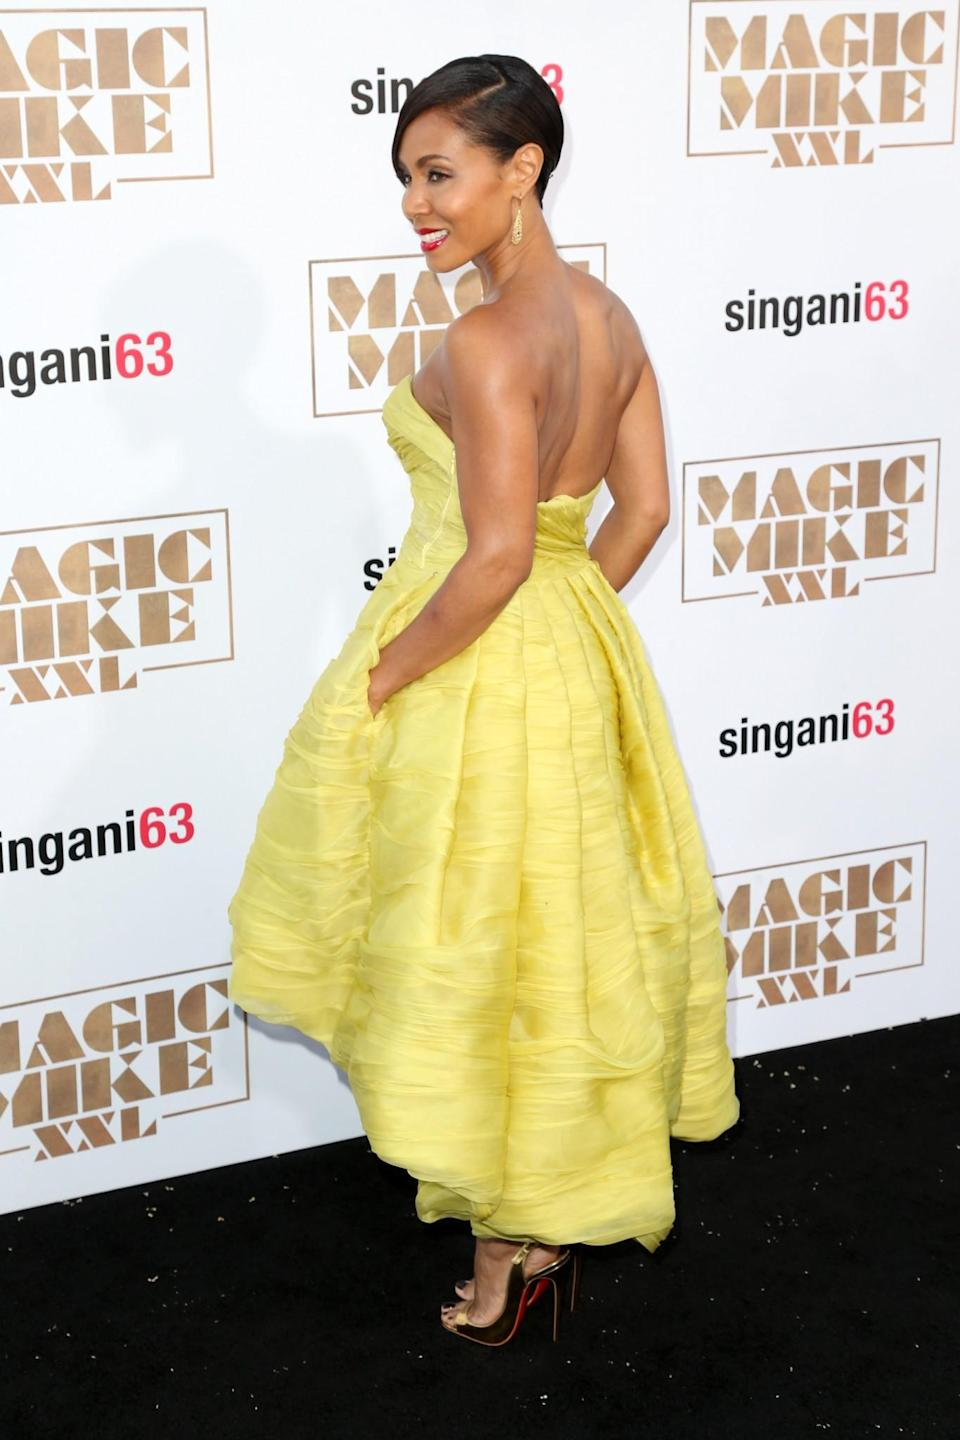 <p>Back in 2014, at the premiere of 'Magic Mike XXL', Jada worked the Belle look IRL in a strapless yellow dress. [Photo: Getty] </p>